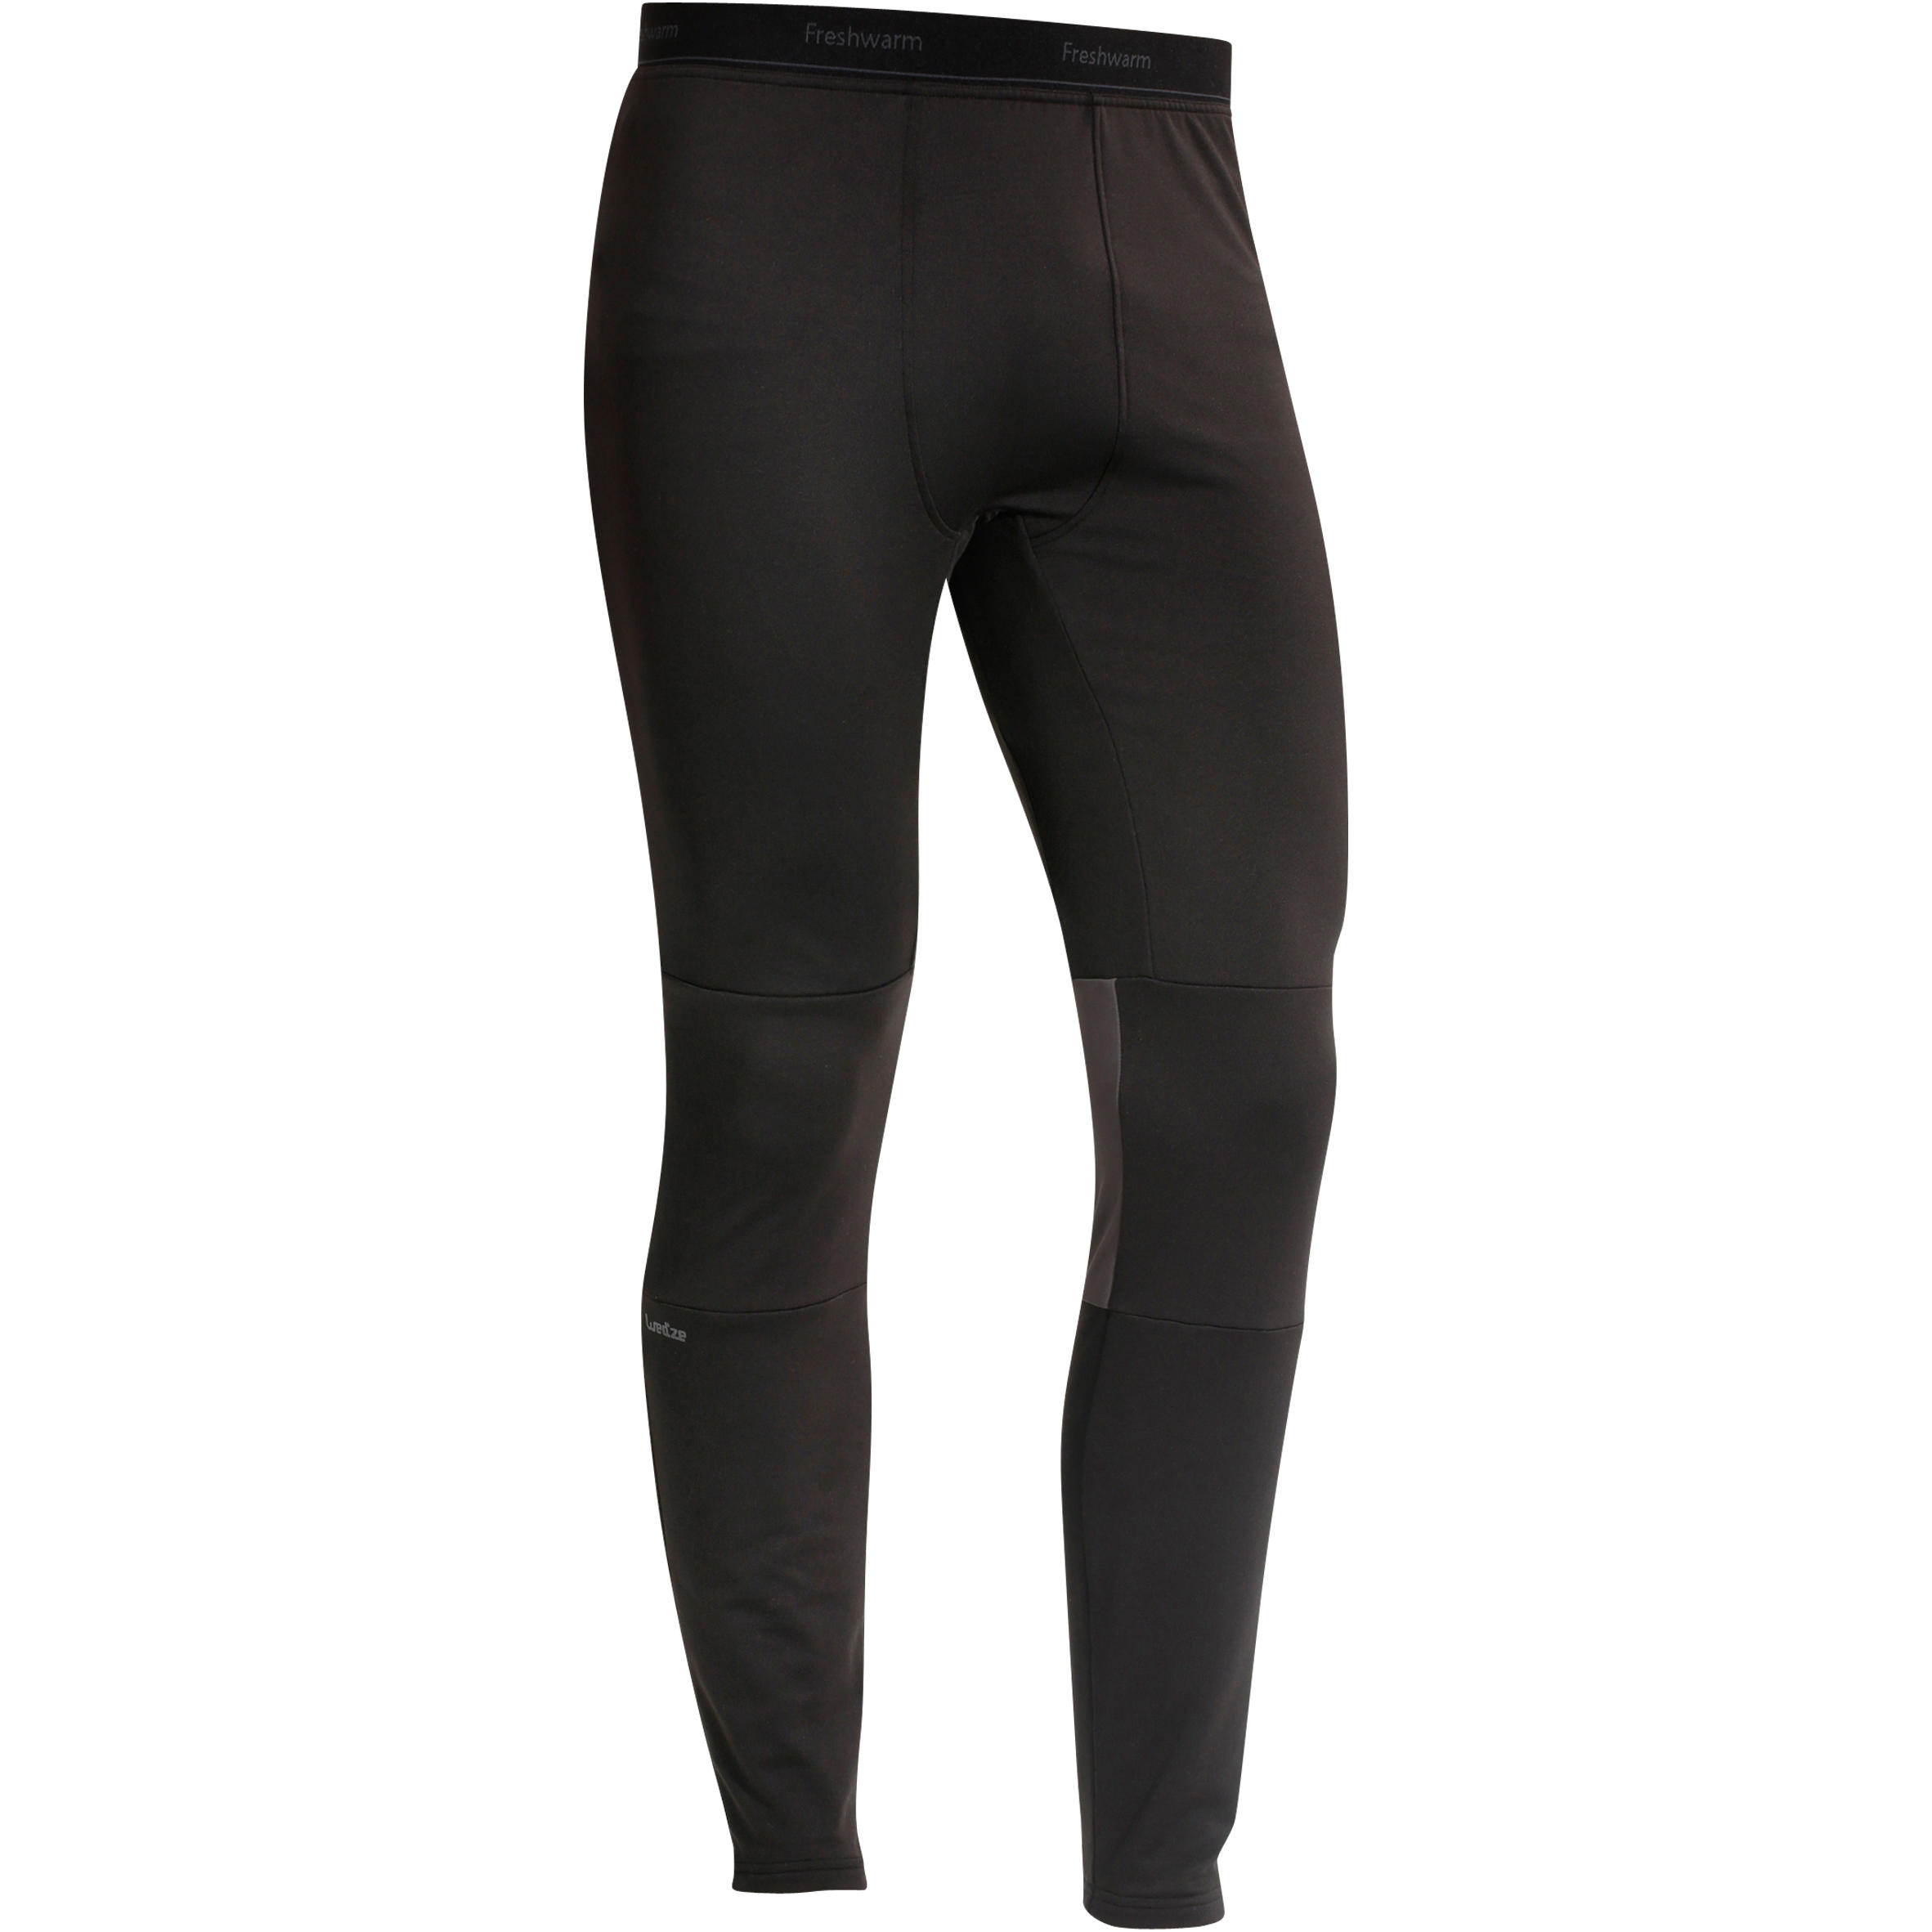 Freshwarm Men's Ski Base-Layer Bottoms - Black